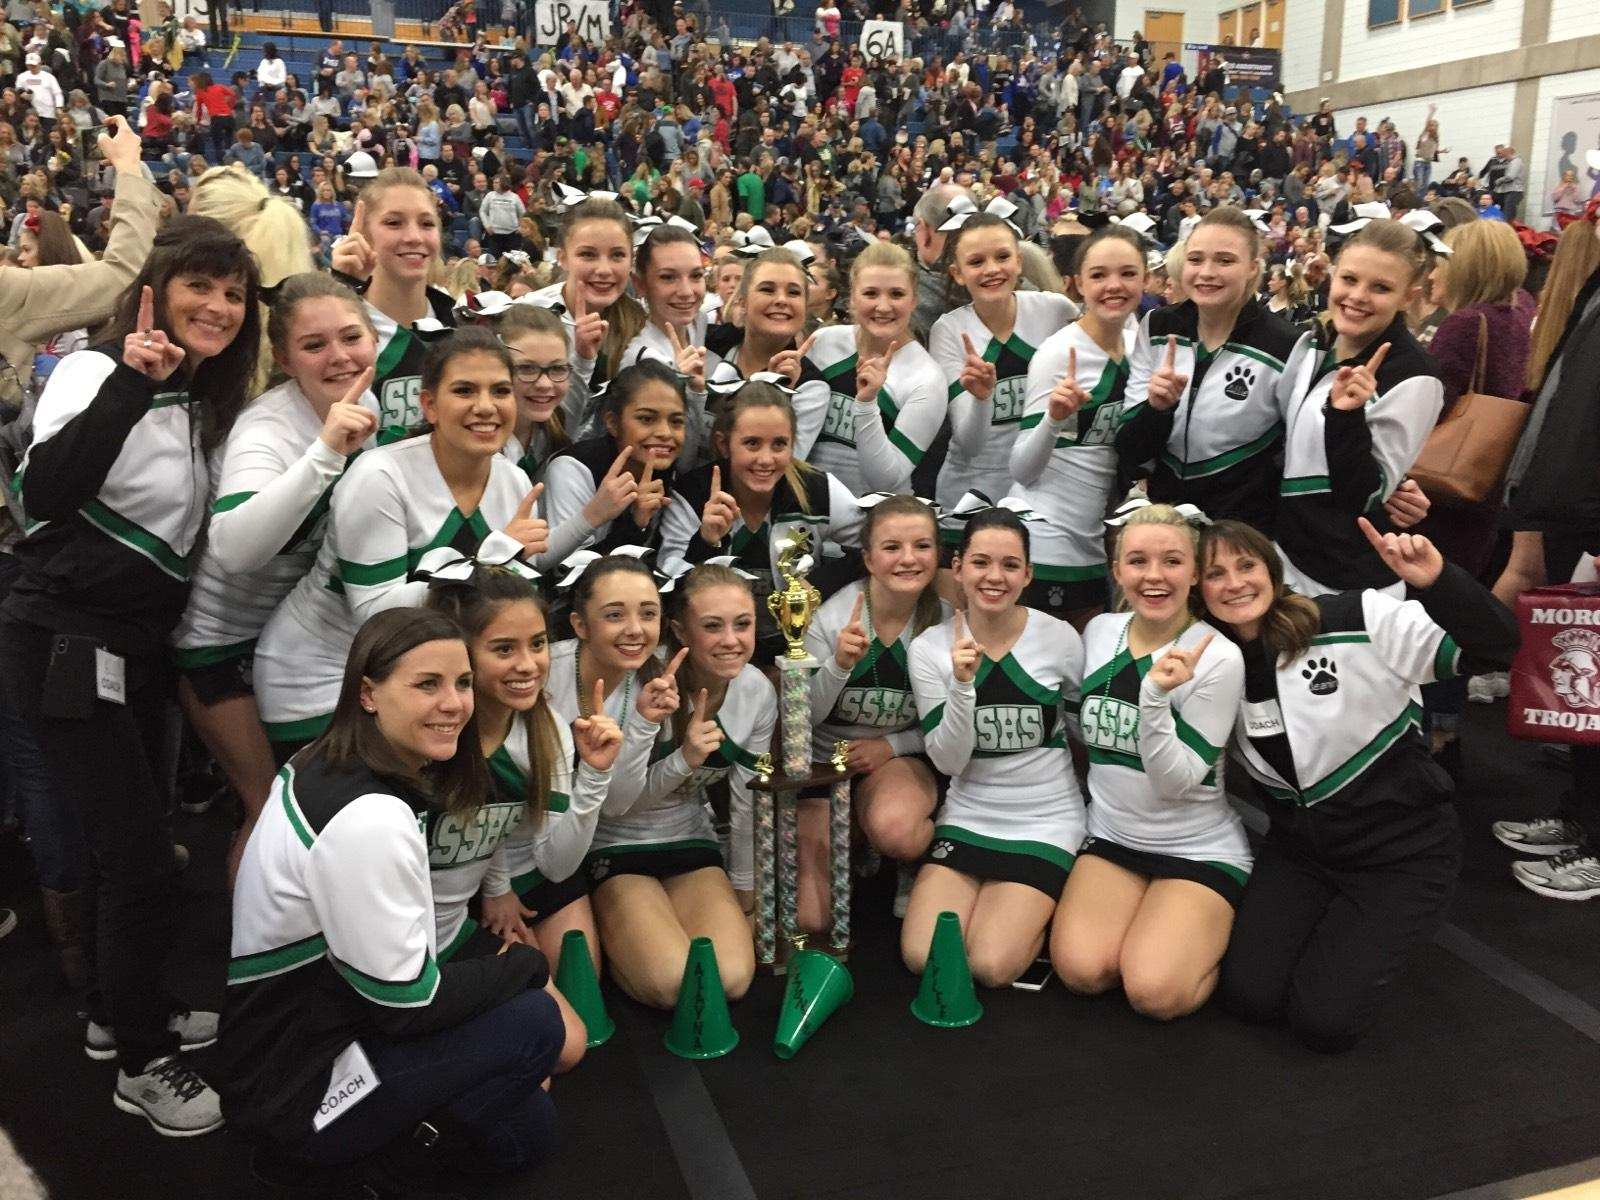 South Summit Cheer Leaders Take State in School Song Category in 1st Year of Competition